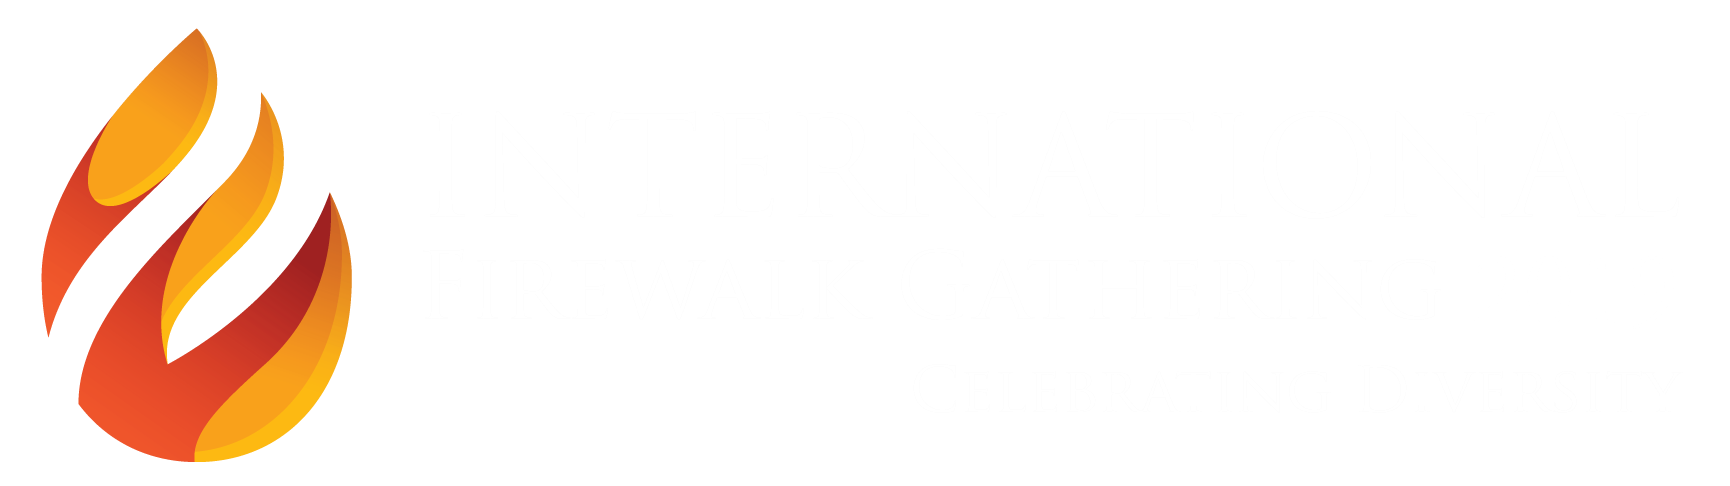 Firewalk Gathering